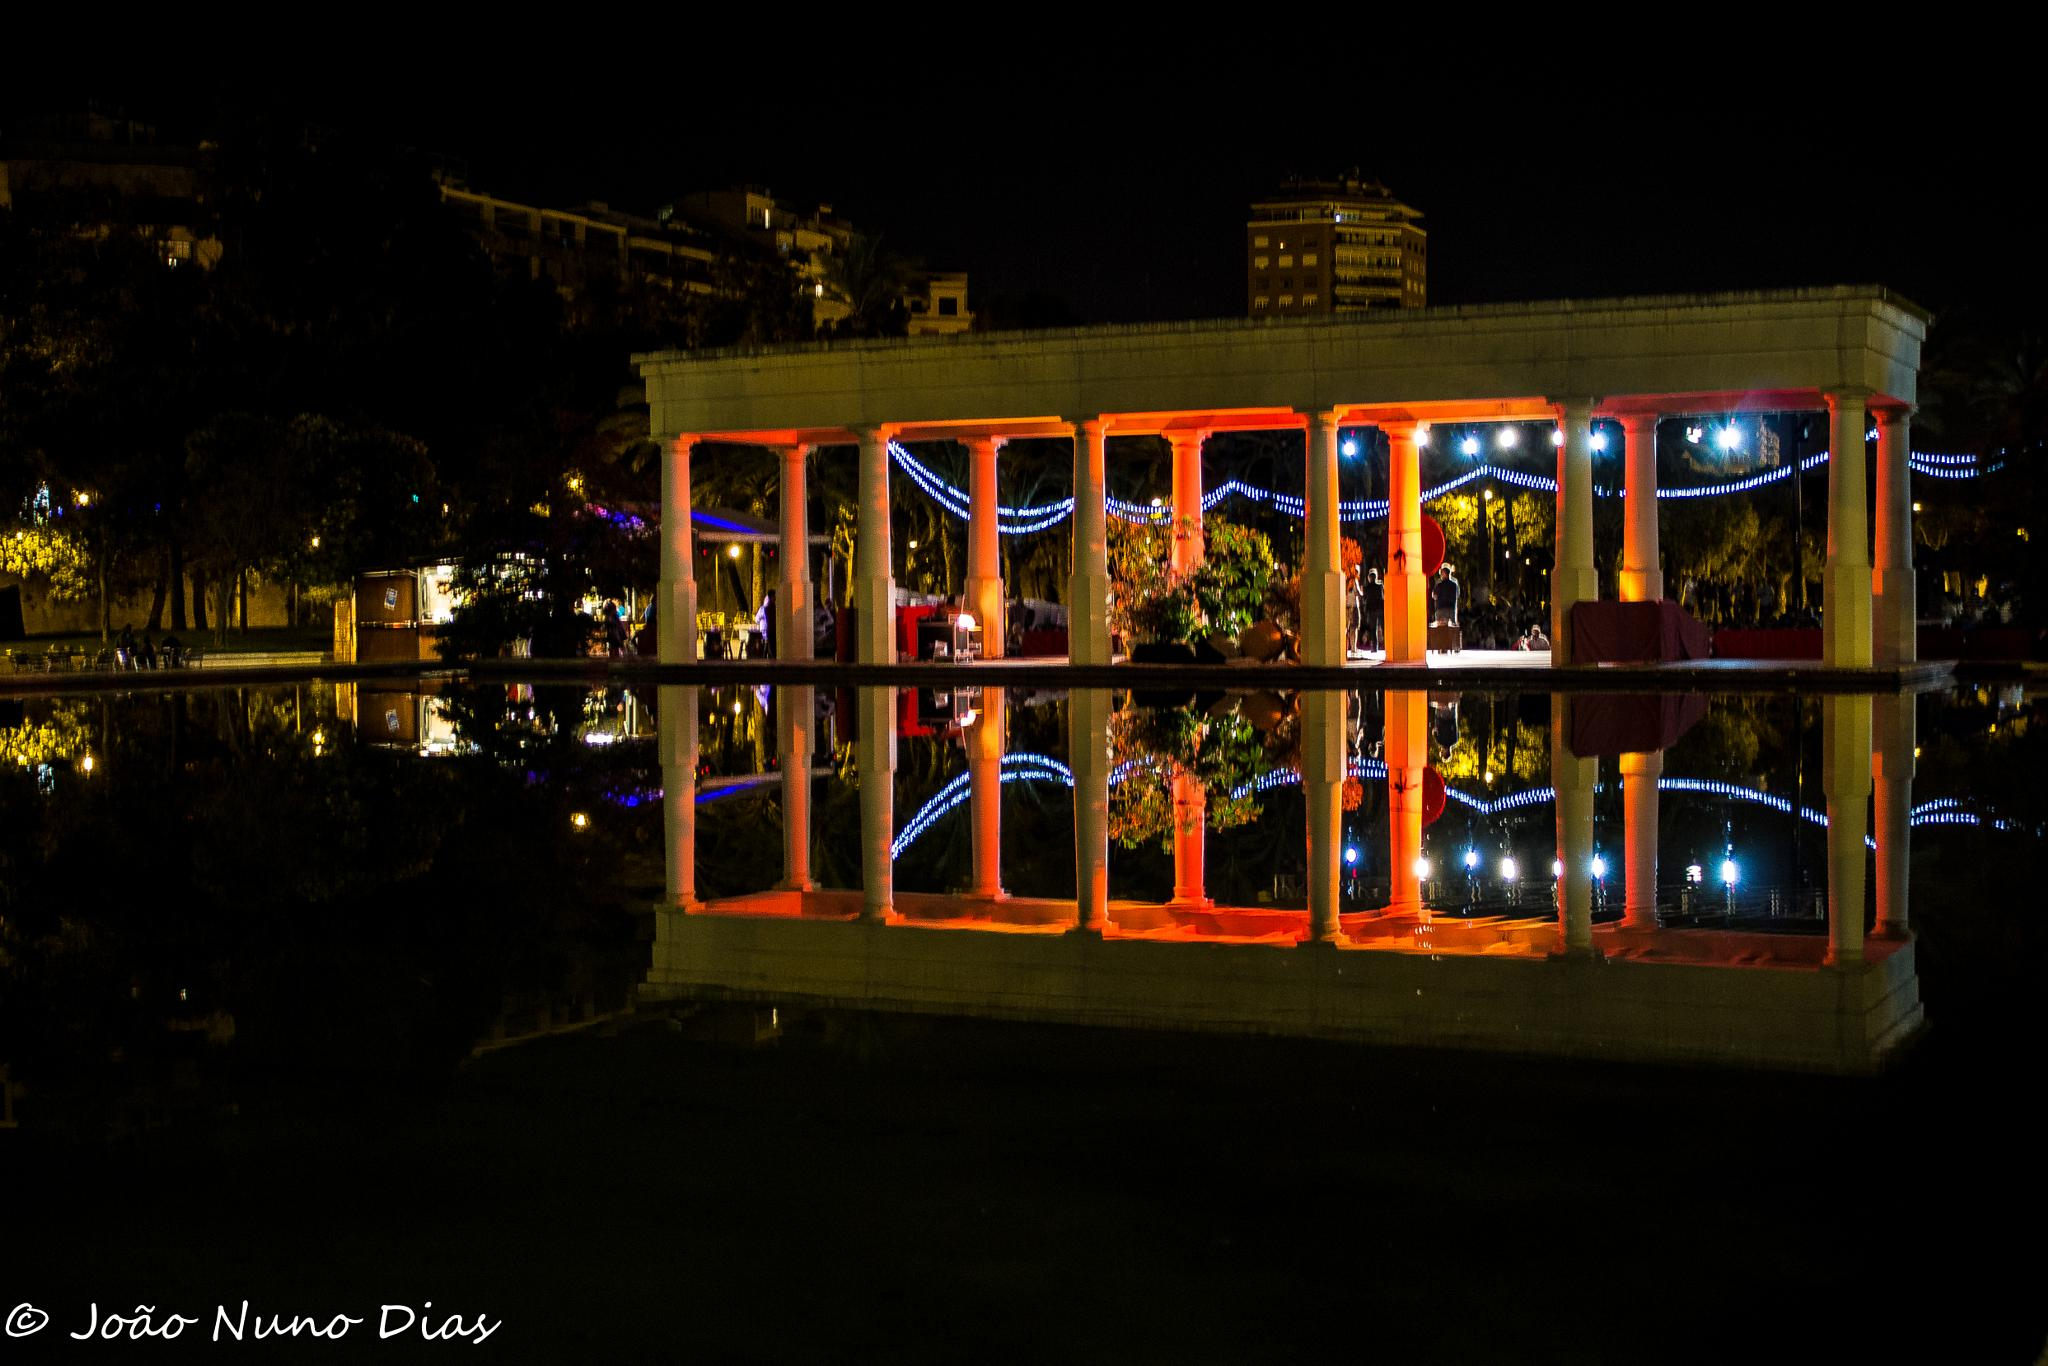 Night reflexions by Nuno Dias